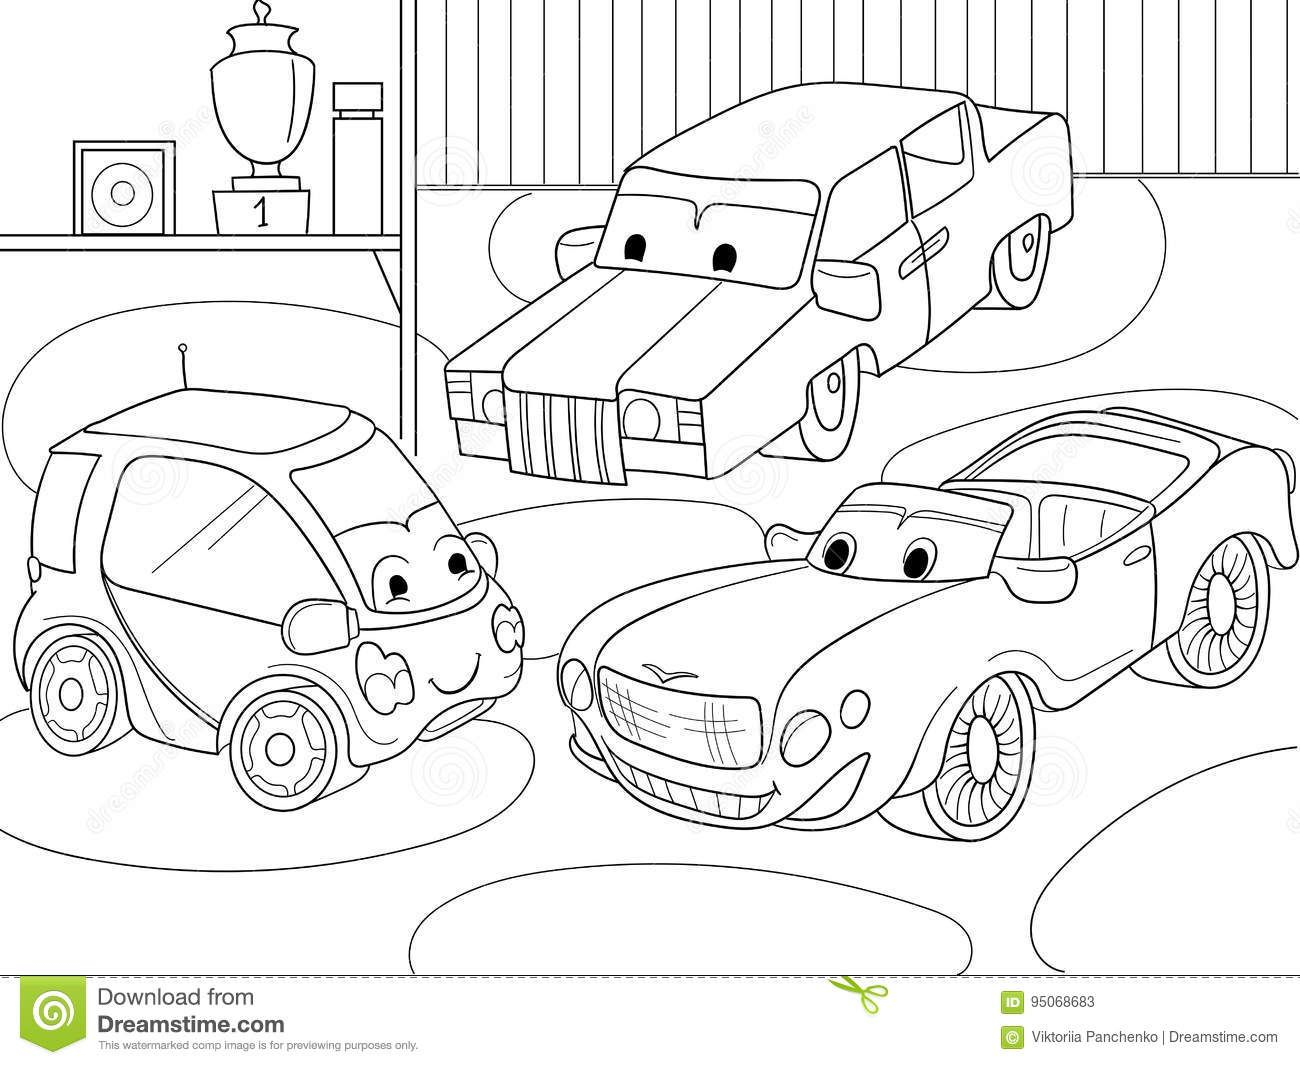 - Photo About Childrens Cartoon Coloring Book For Boys. Vector